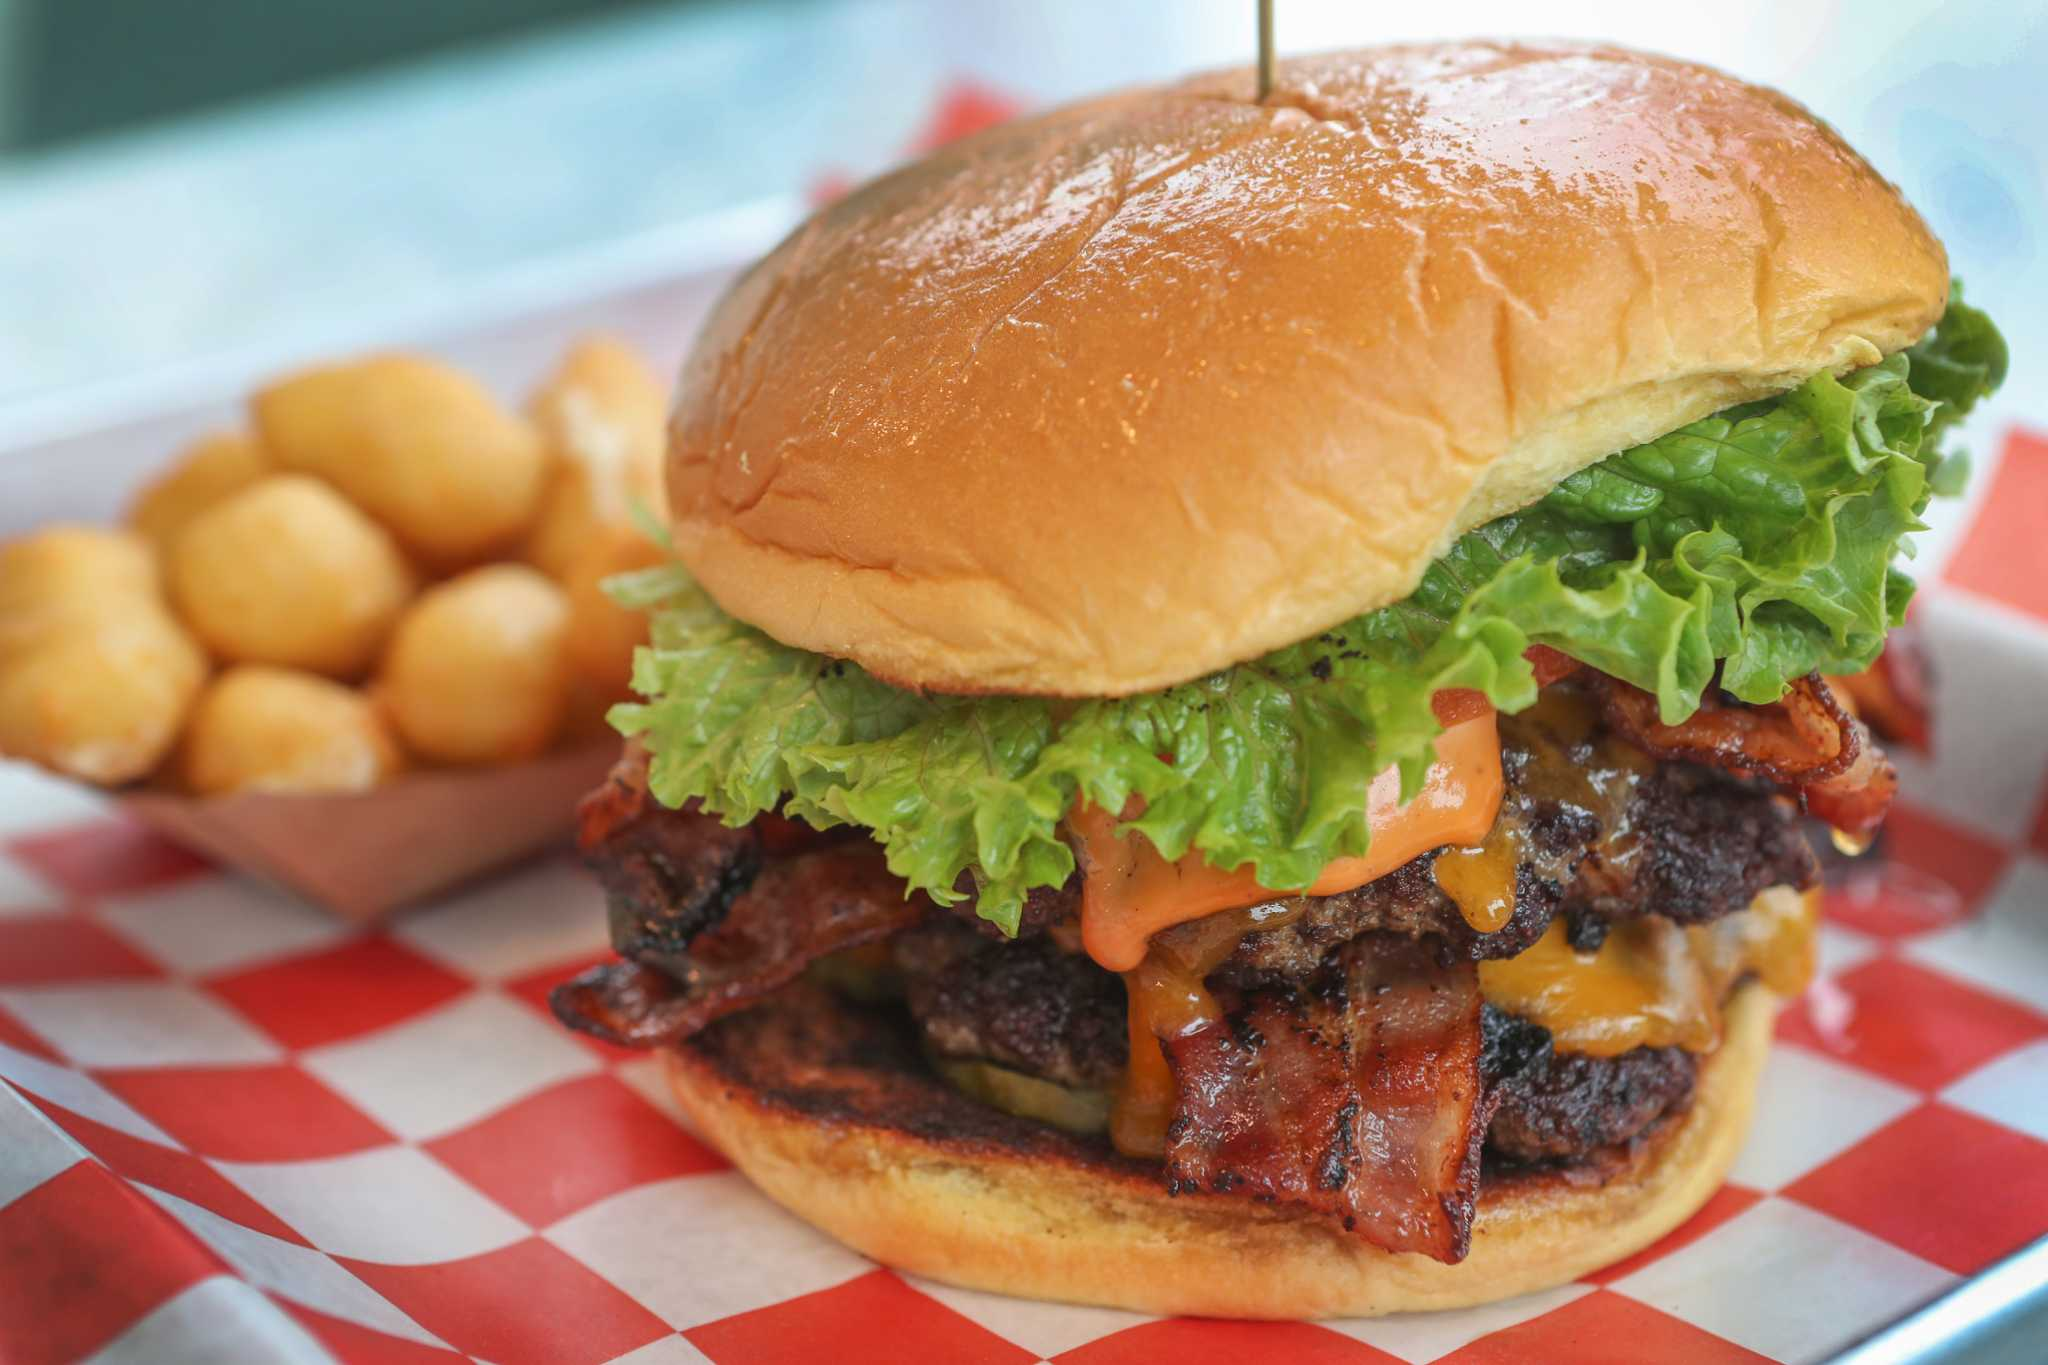 chef ronnie killen u0027s burger joint gets surprising one star review